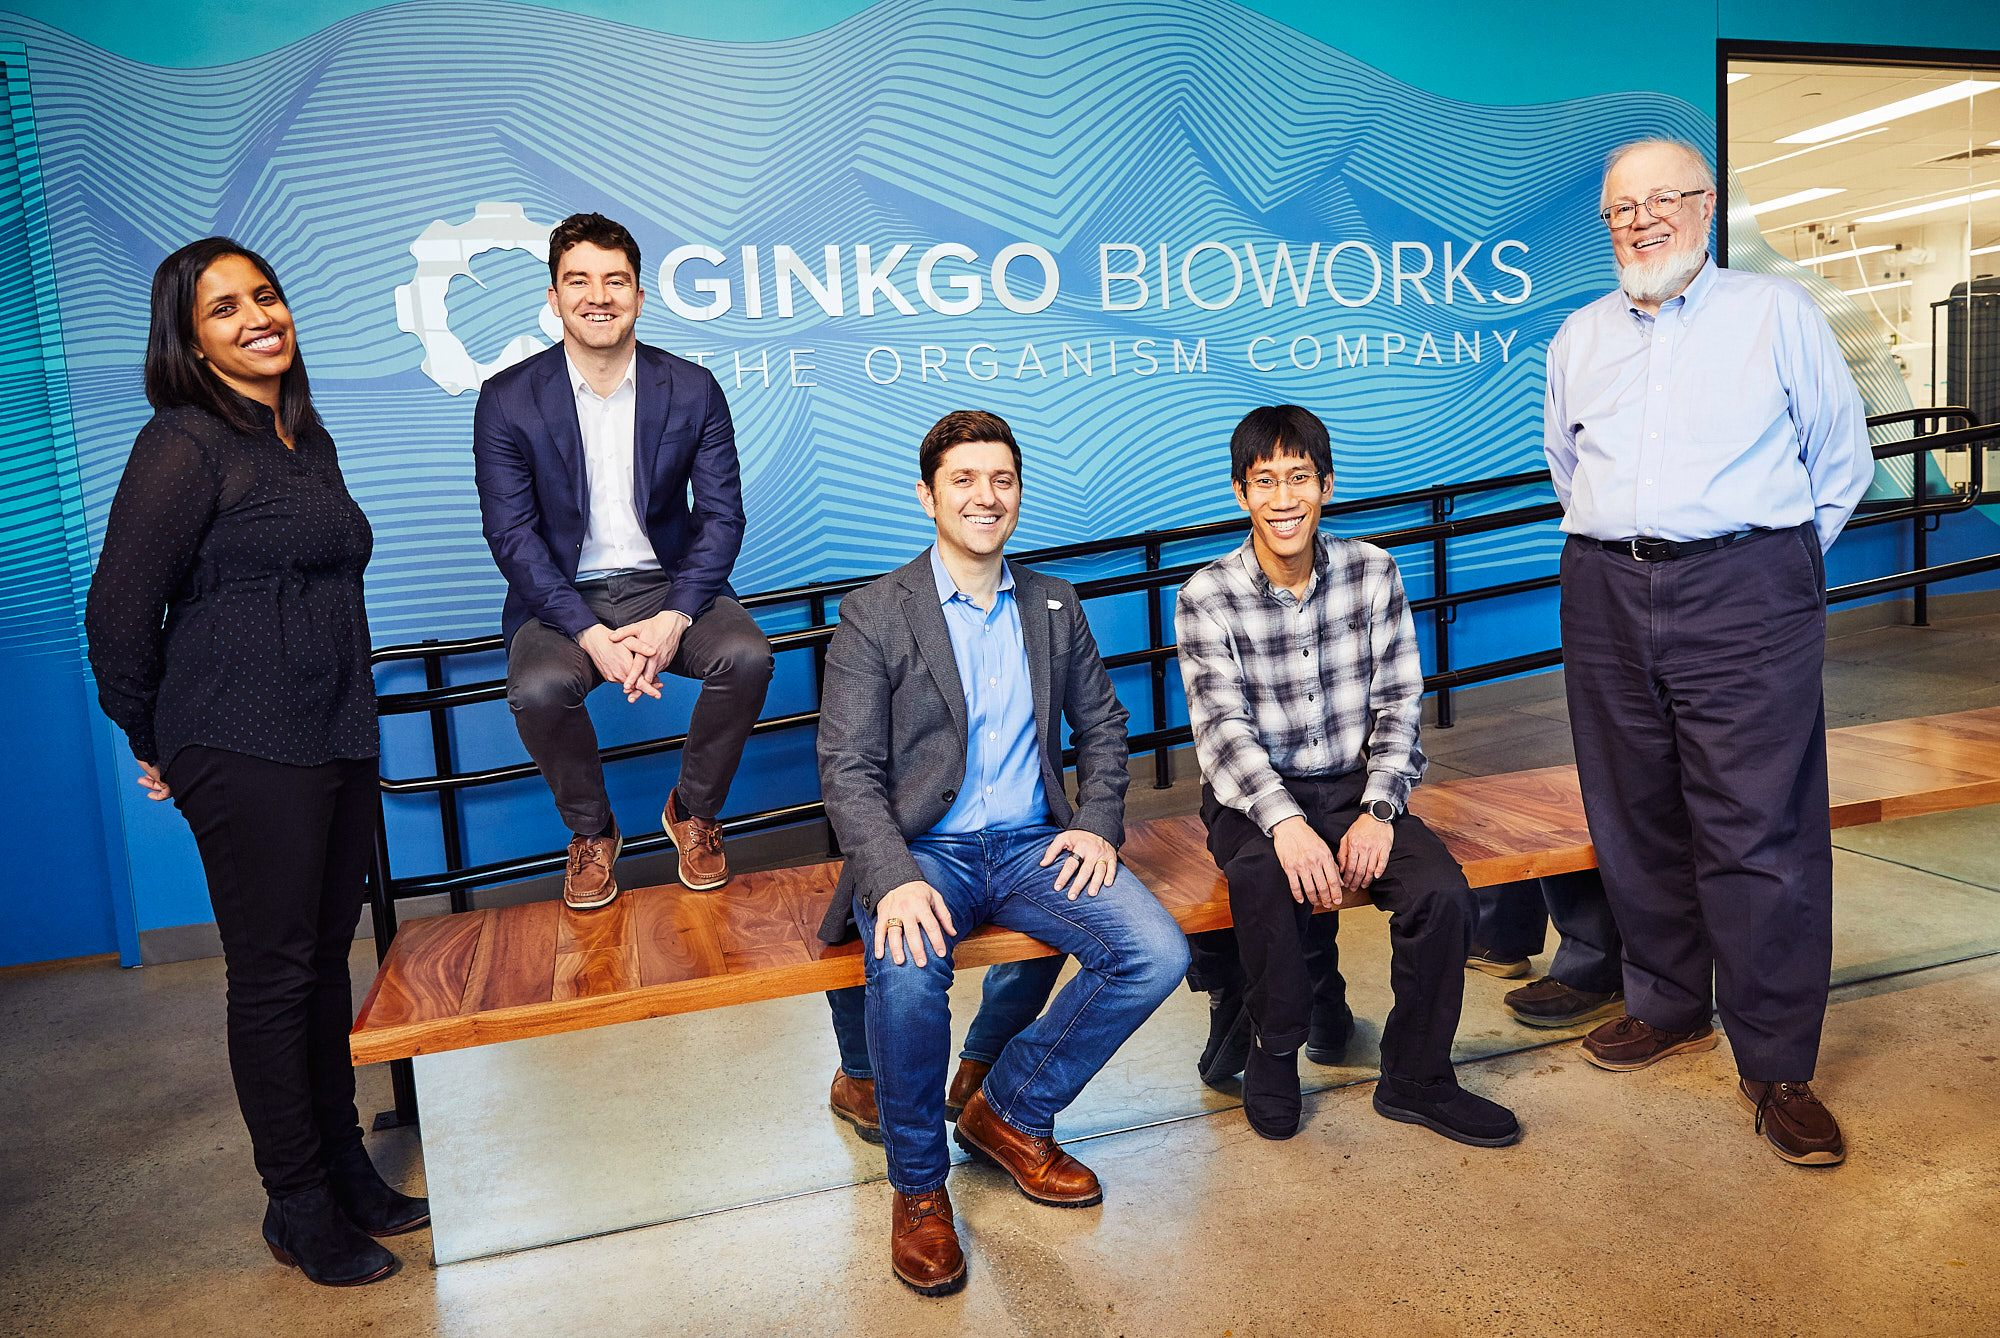 photograph of the founders of Ginkgo Bioworks